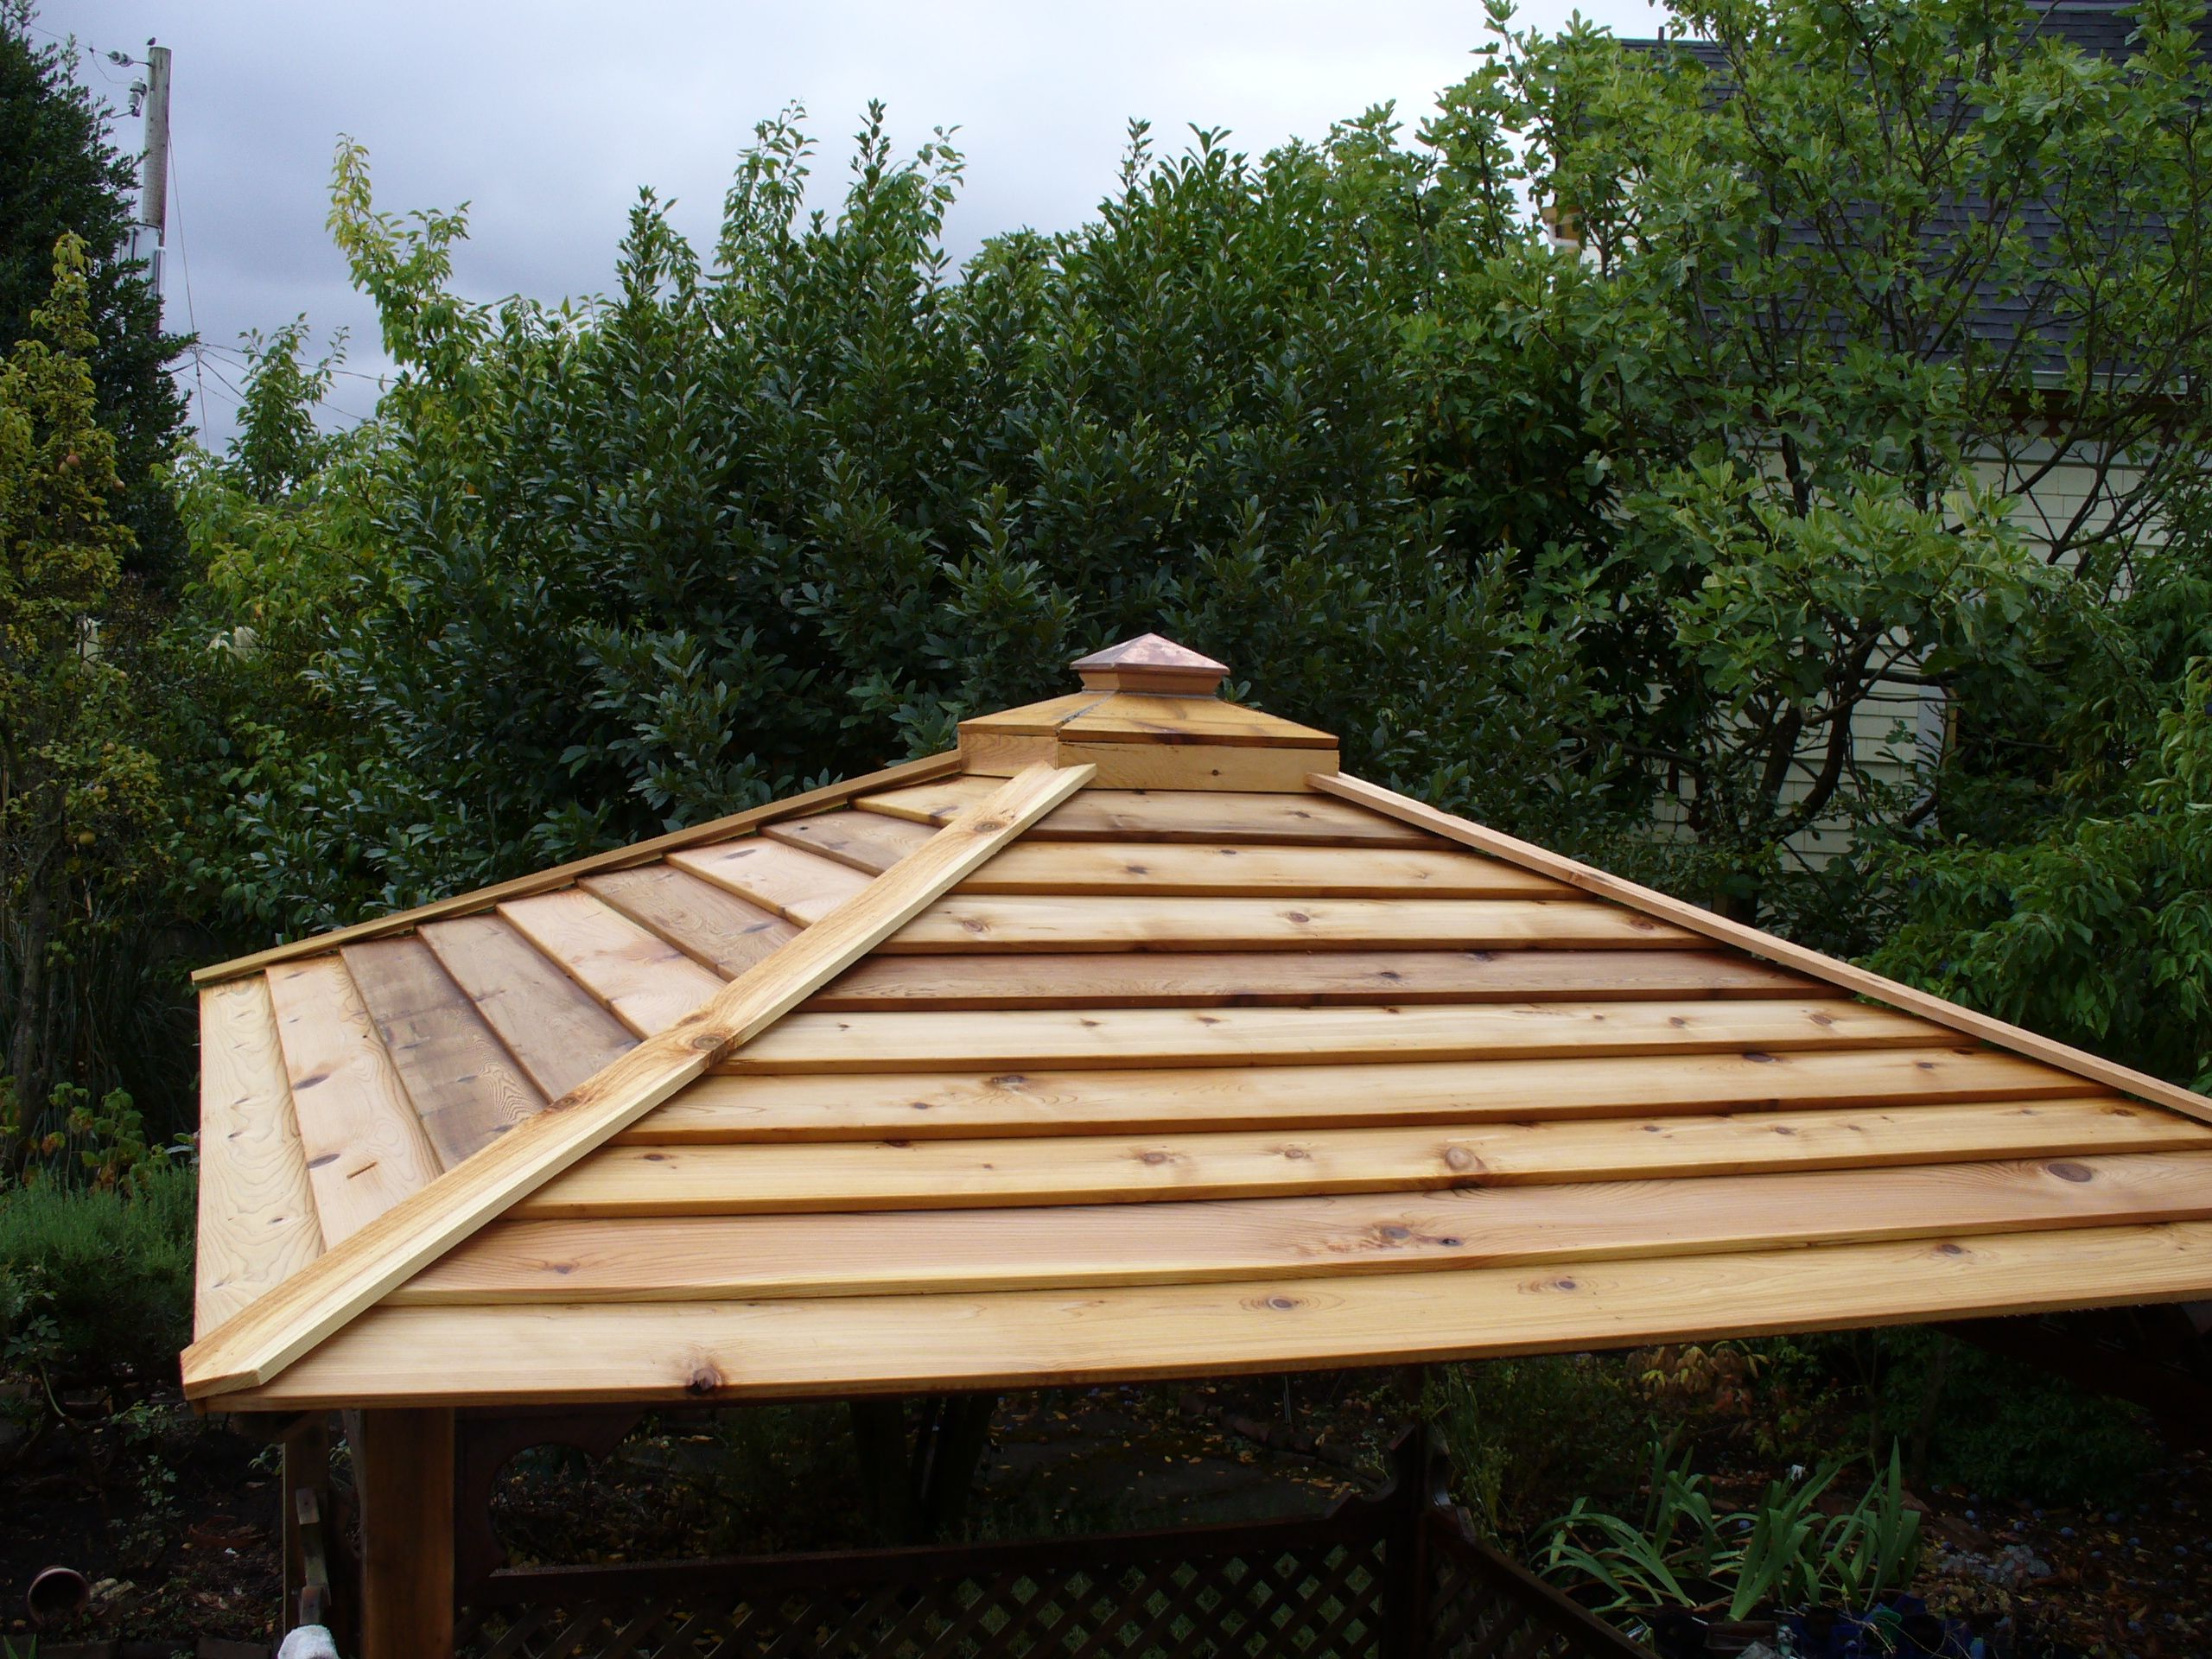 Gazebo Plans Texas Gazebo Plans Gazebo Roof Gazebo Plans